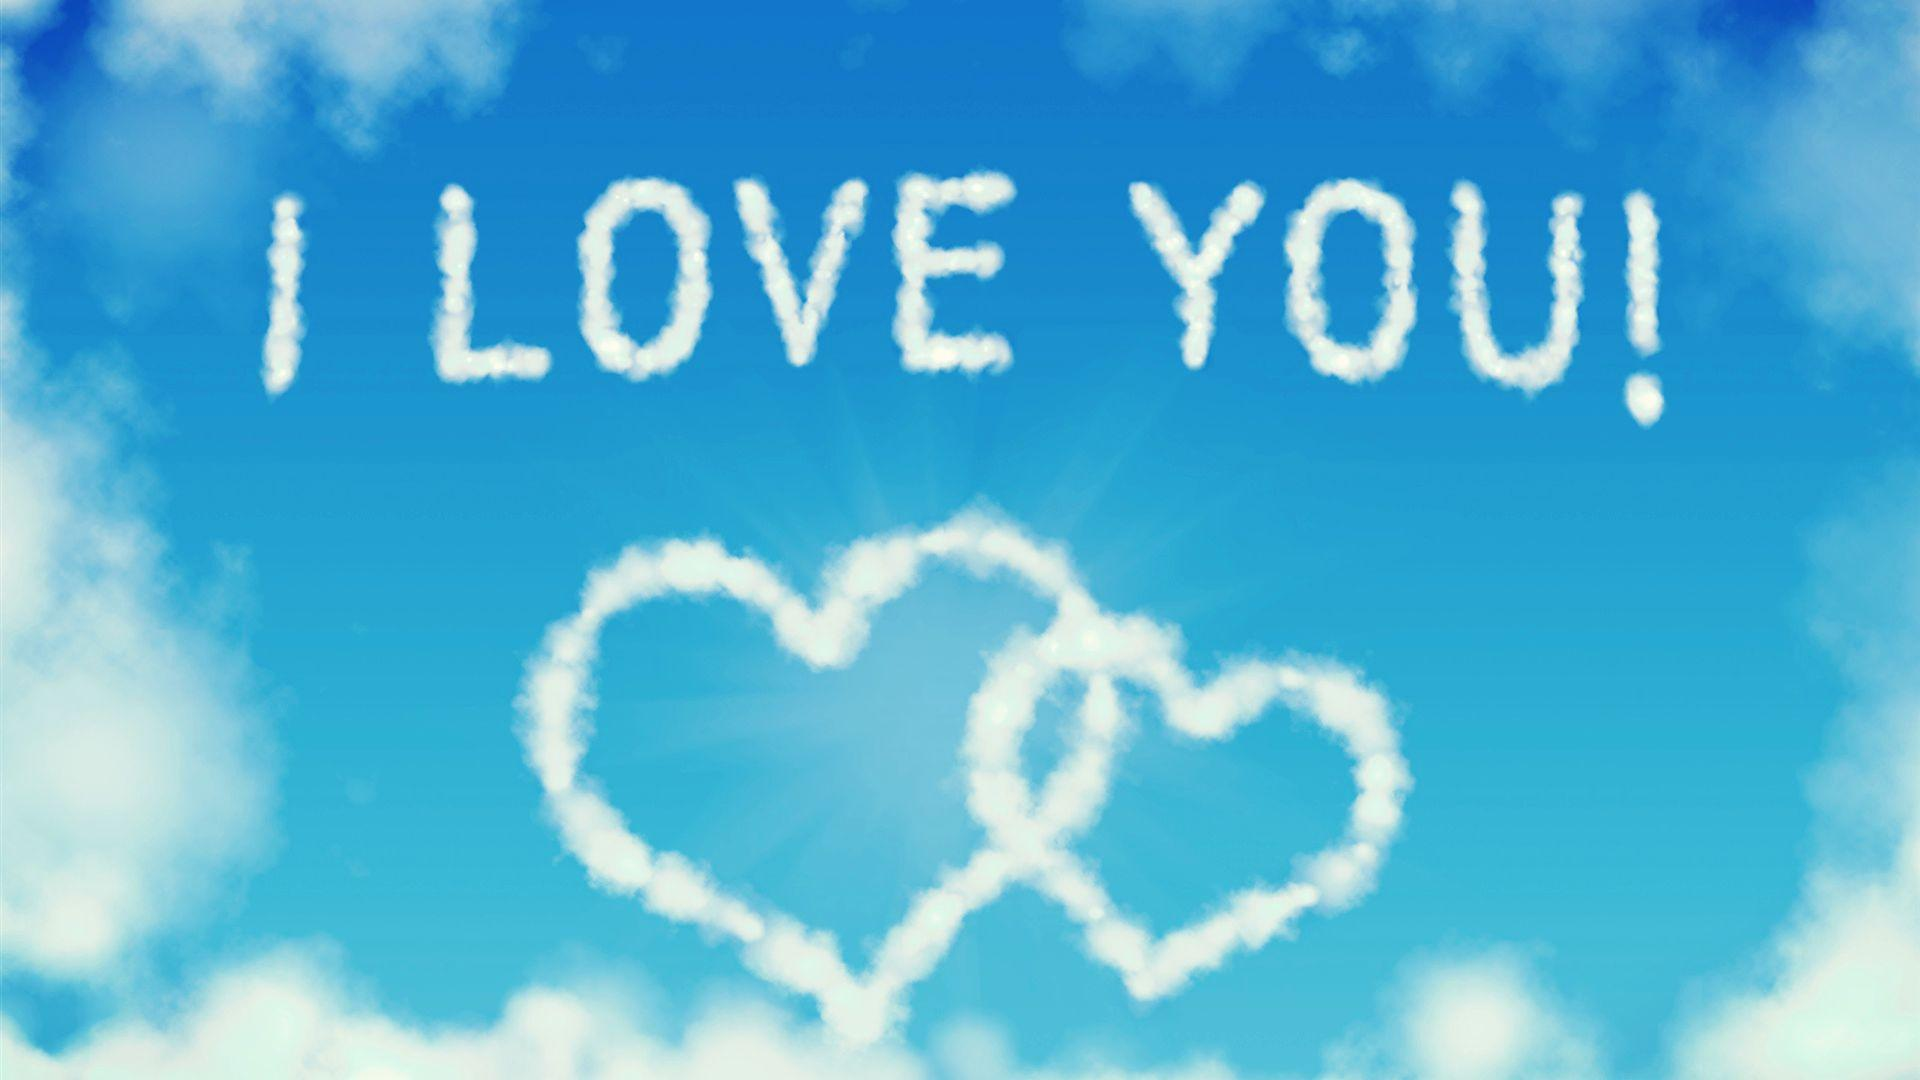 I Love You Wallpaper For Fb : I Love You Wallpapers - Wallpaper cave